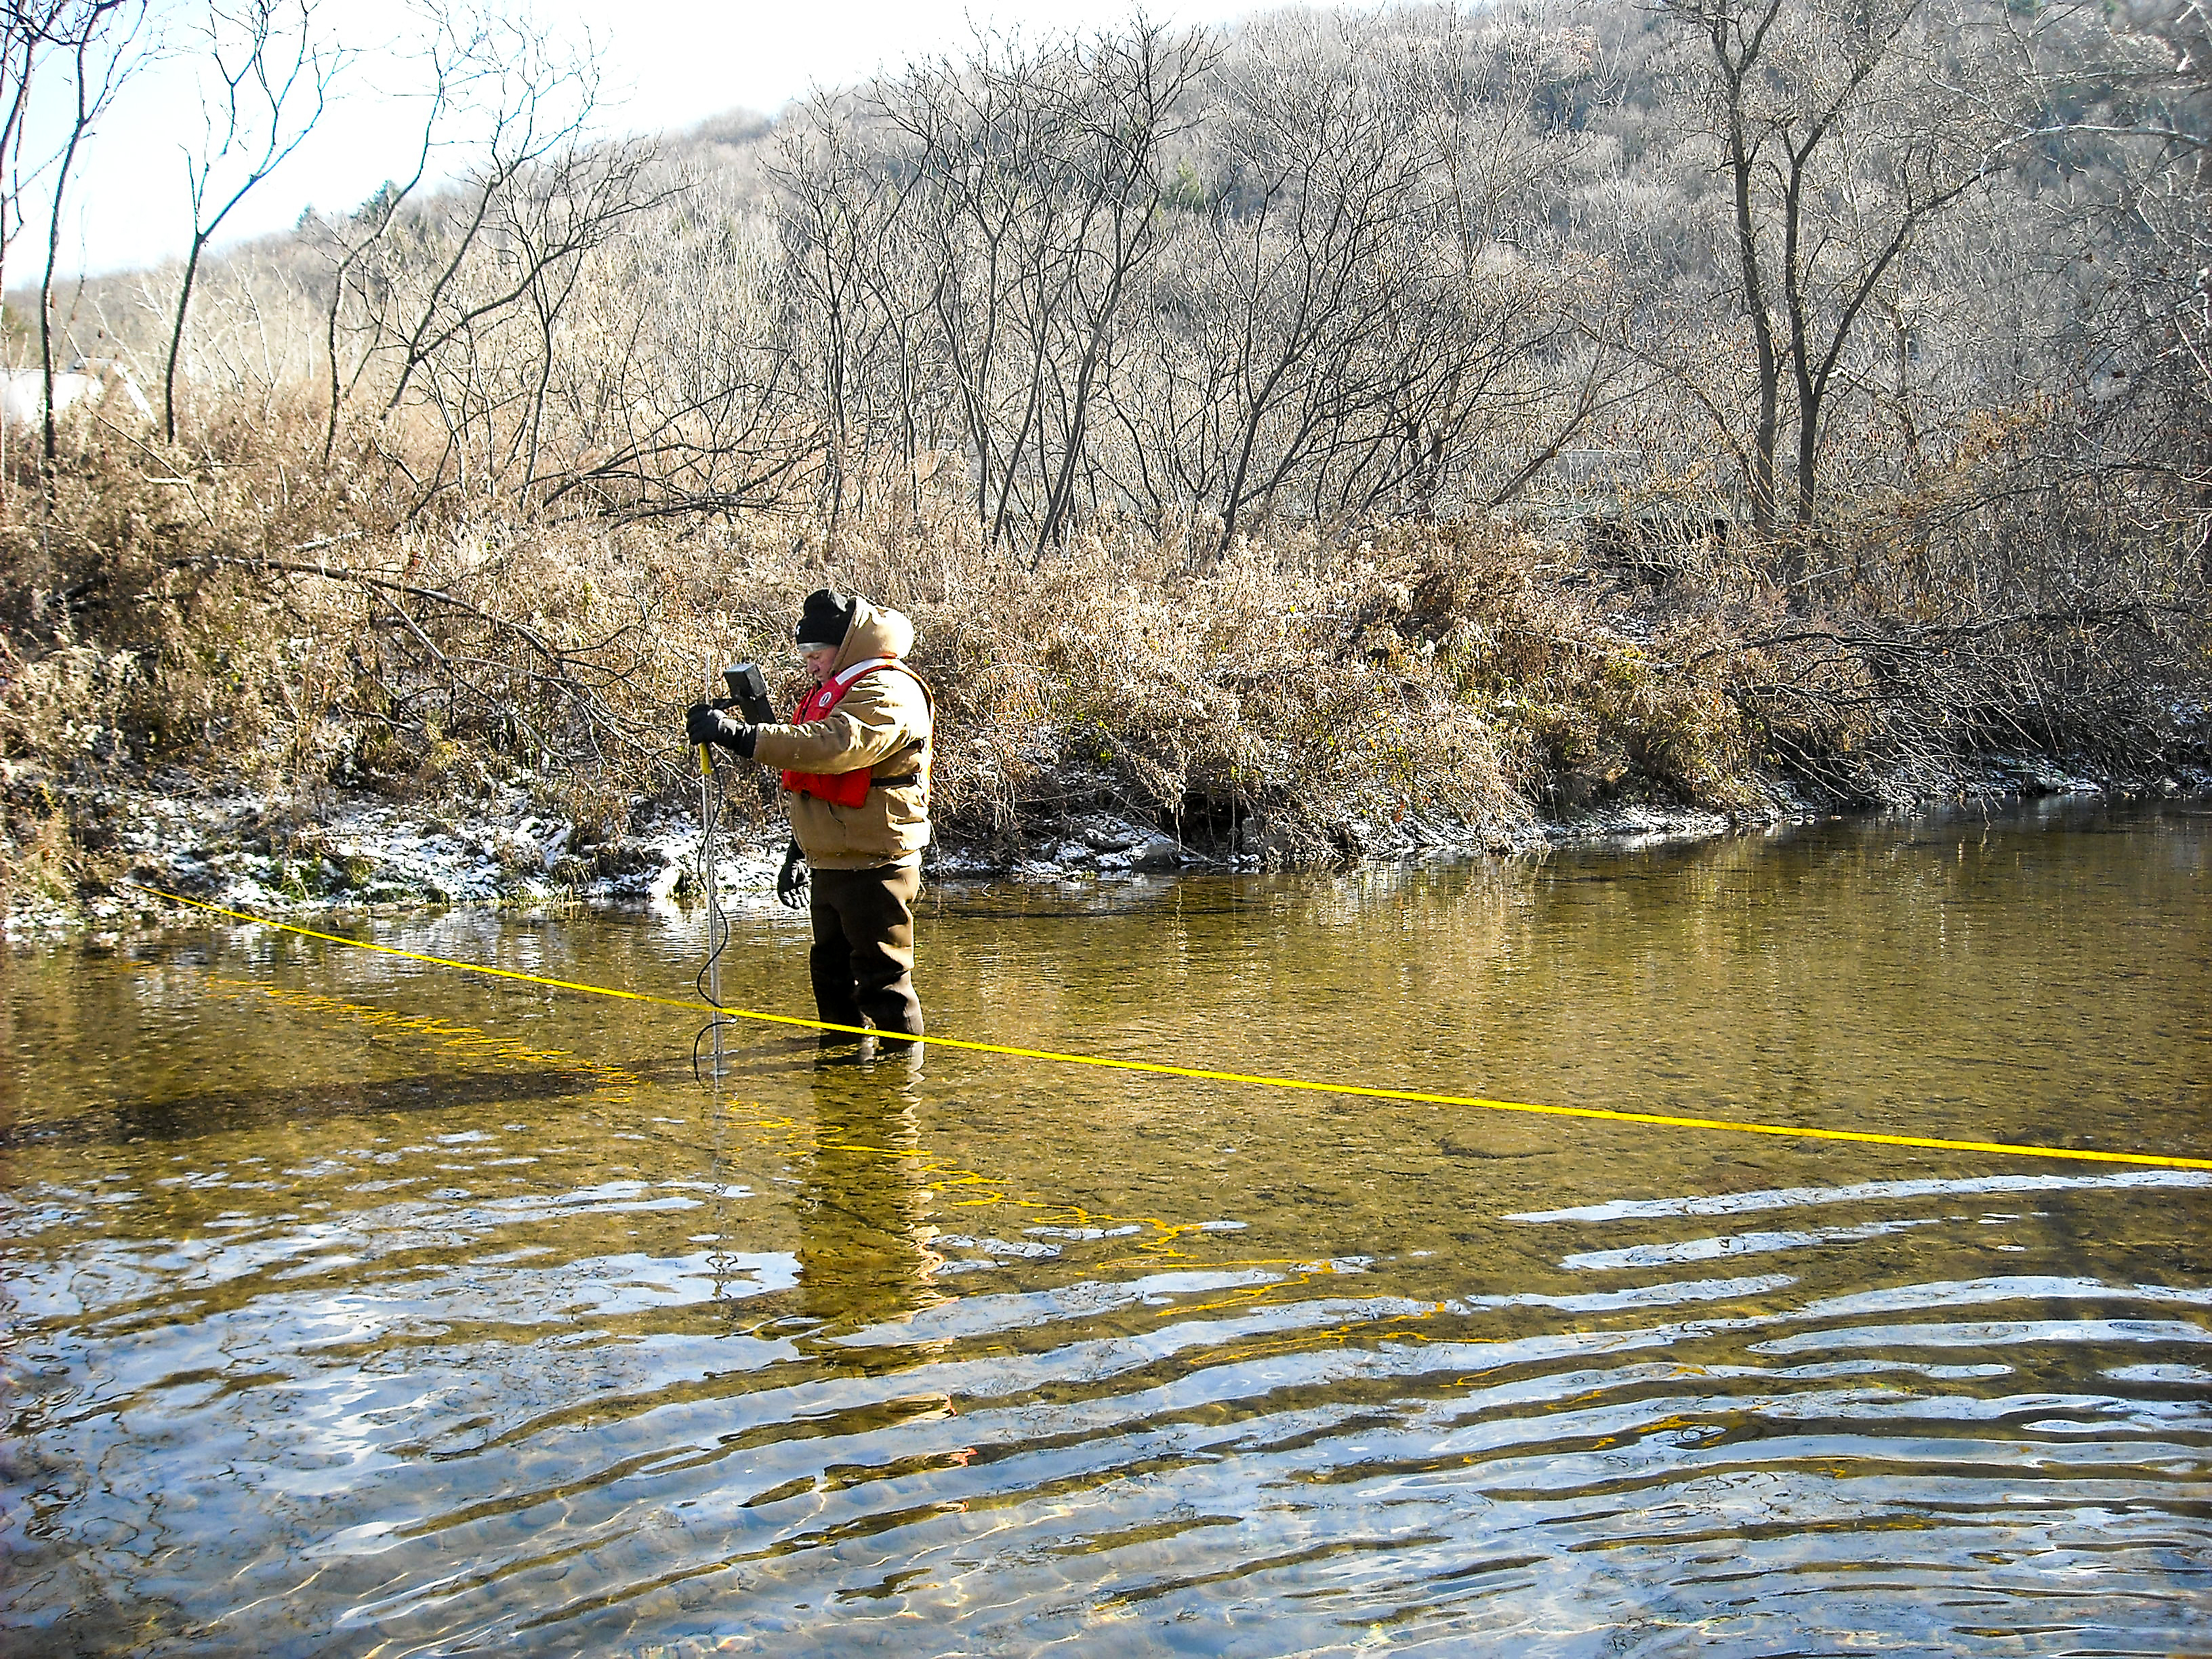 20150407hoMethane_1-1 Randall Conger, a hydrologist from the U.S. Geological Survey, takes measurements in Nine Partners Creek in northeastern Pennsylvania as part of a study of methane levels in streams near natural gas development areas.